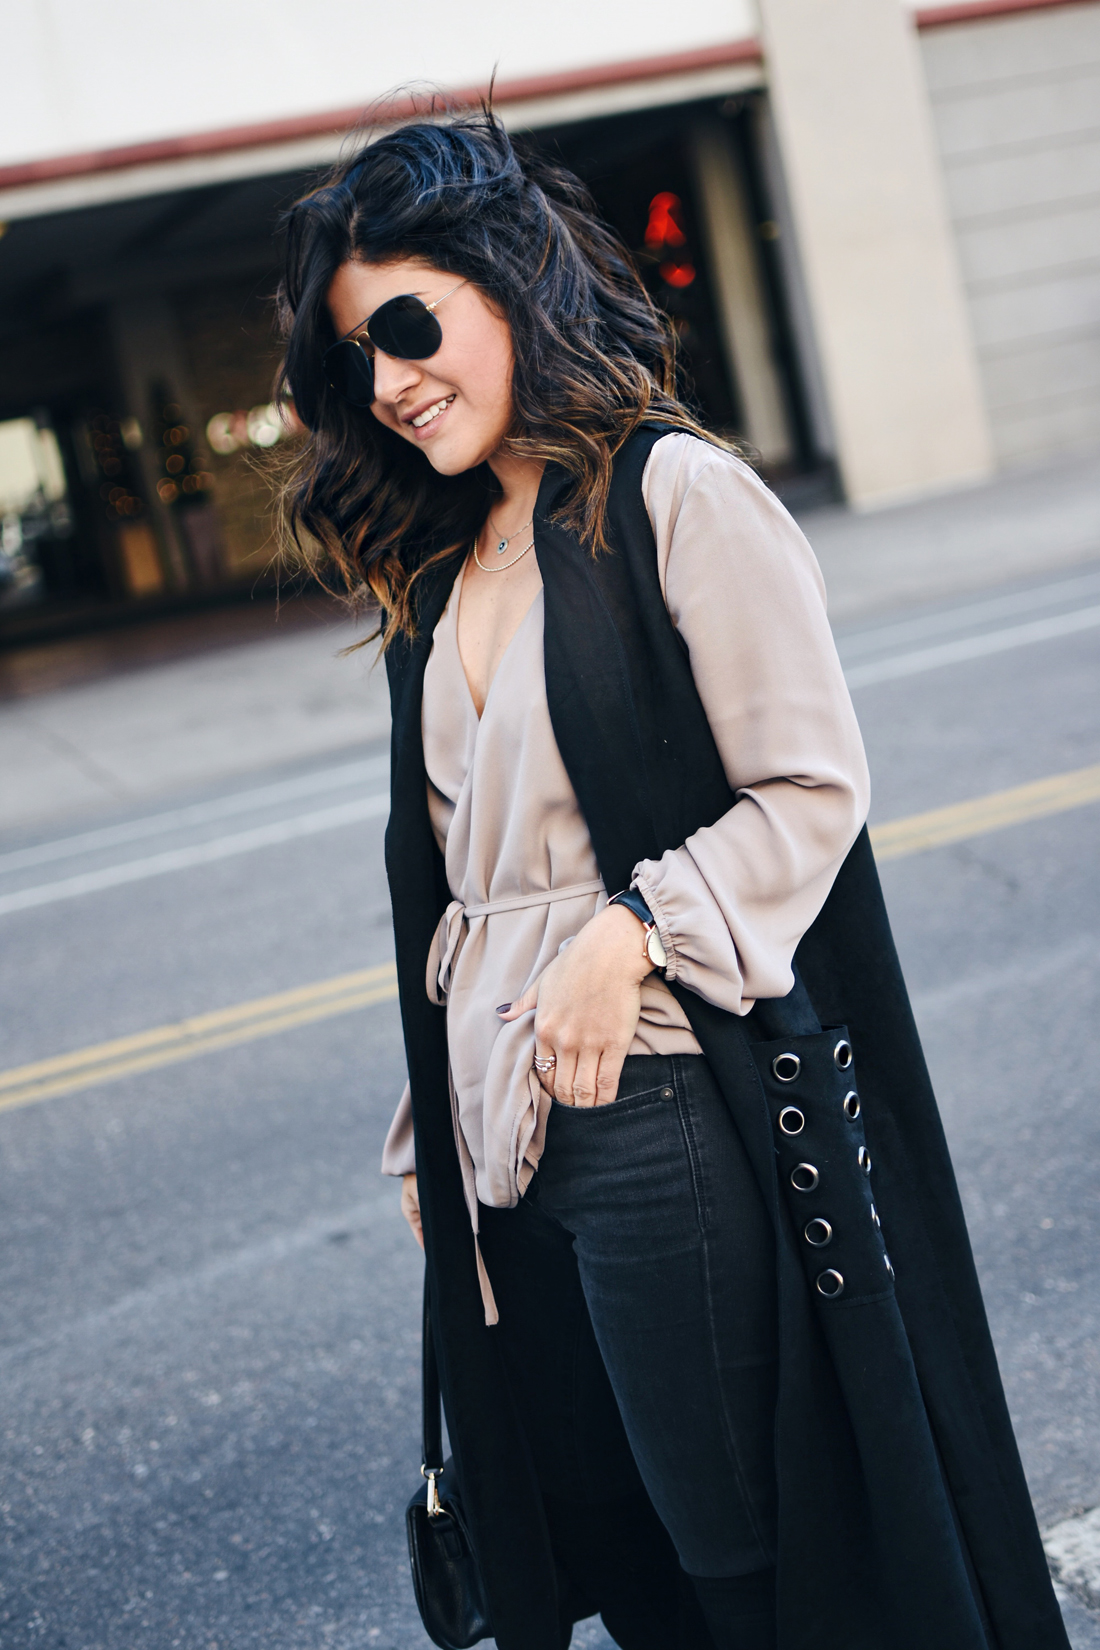 Carolina Hellal of Chic Talk wearing a VIPme black long vest, Forever21 top, Over the knee boots, and Rayban sunglasses